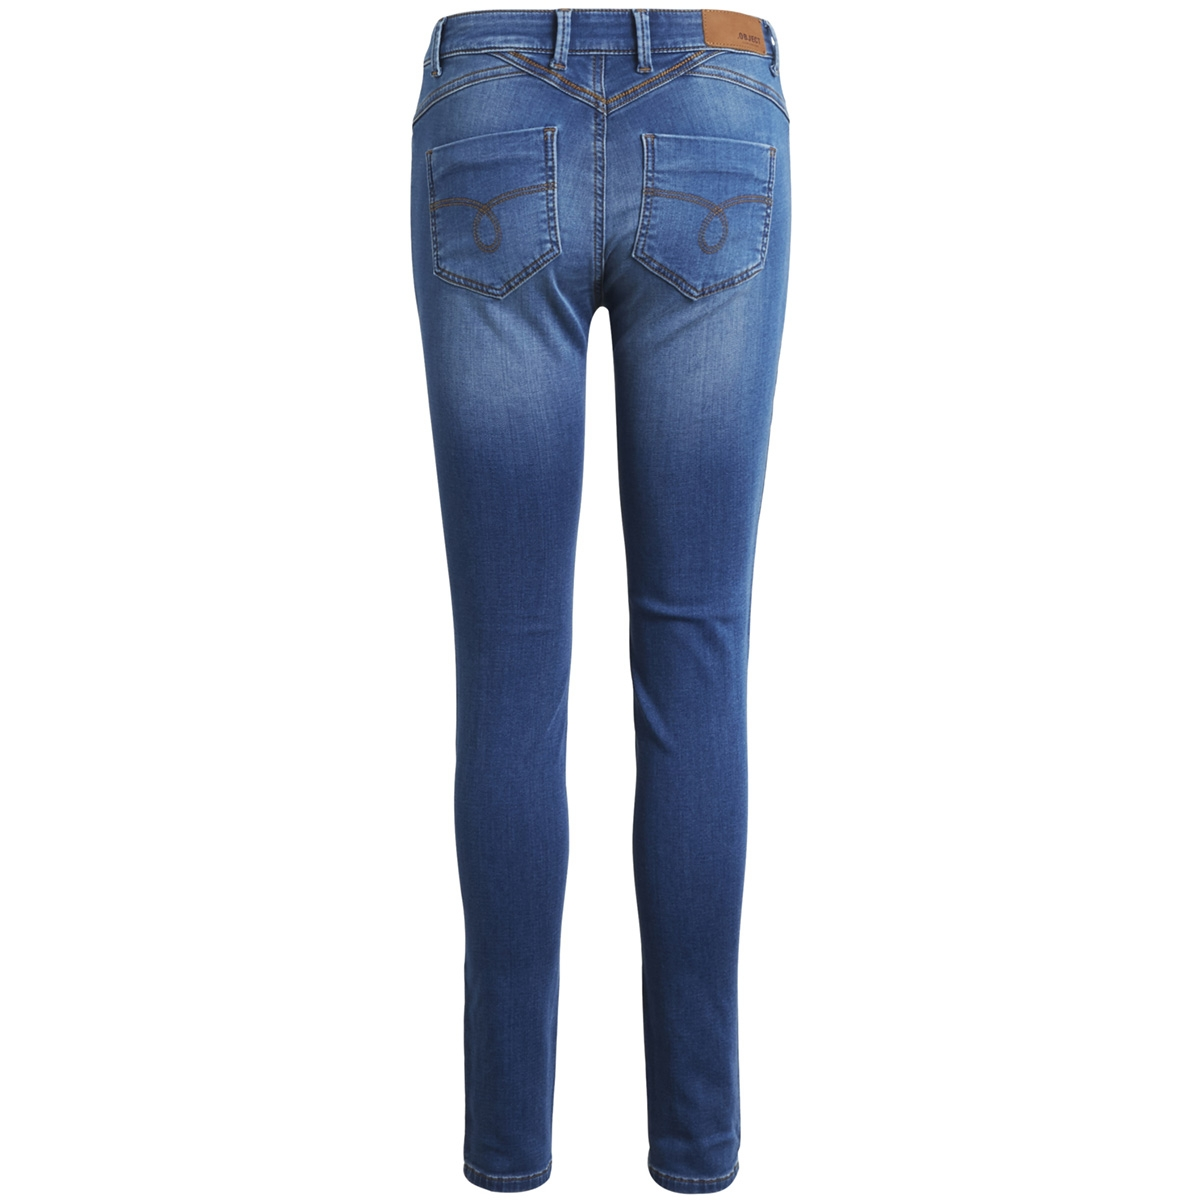 objup-c super stretch obb274 94 div 23026440 object jeans dark blue denim